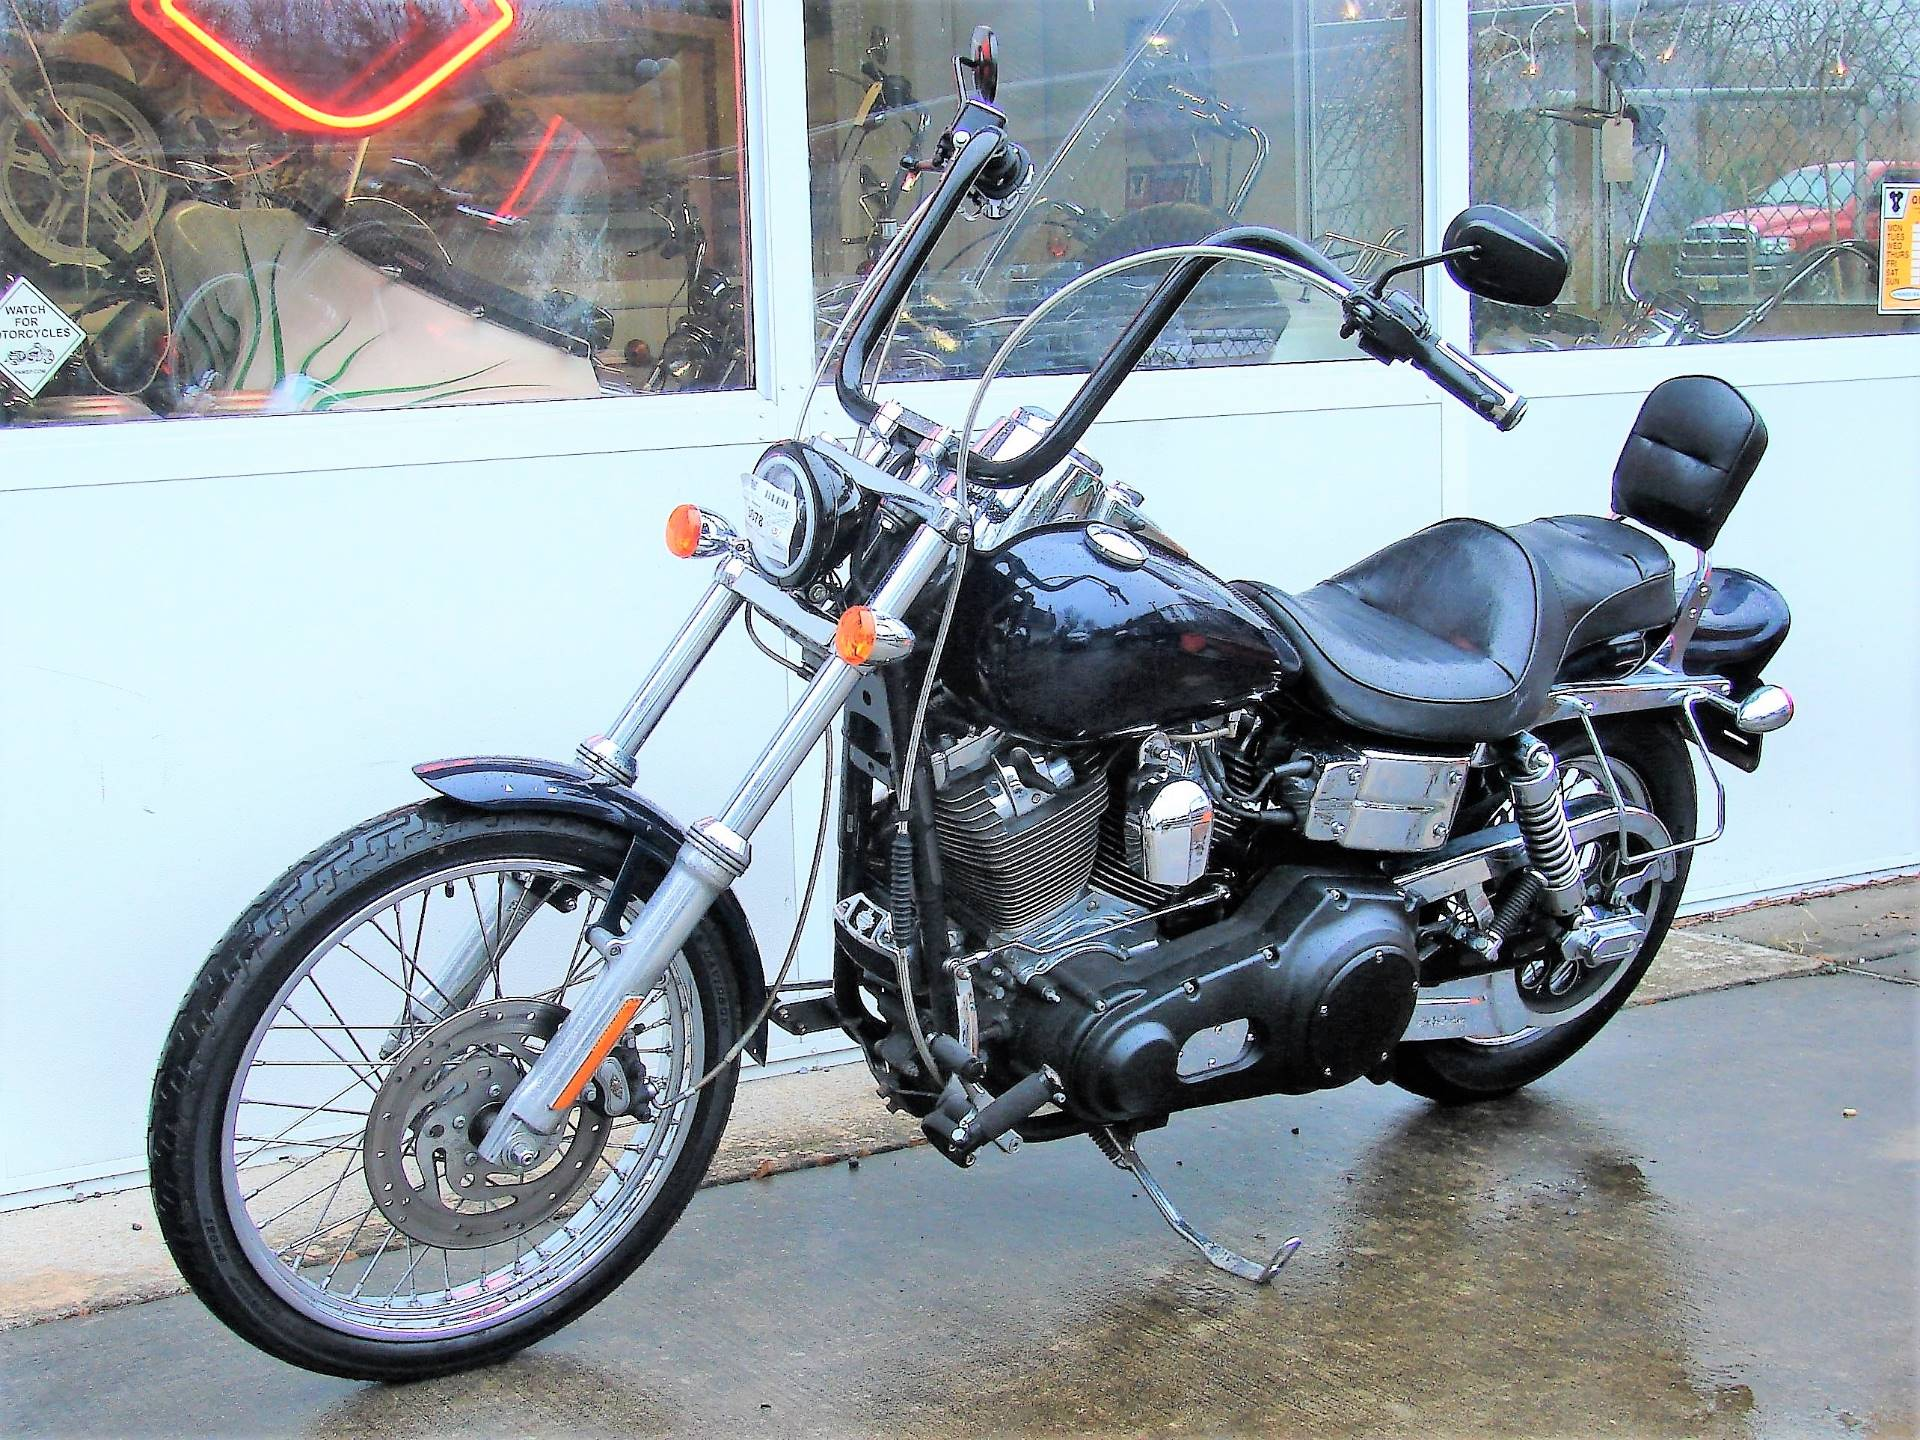 2005 Harley-Davidson FXDWG Dyna Wide Glide  (Navy Blue / Black) in Williamstown, New Jersey - Photo 7